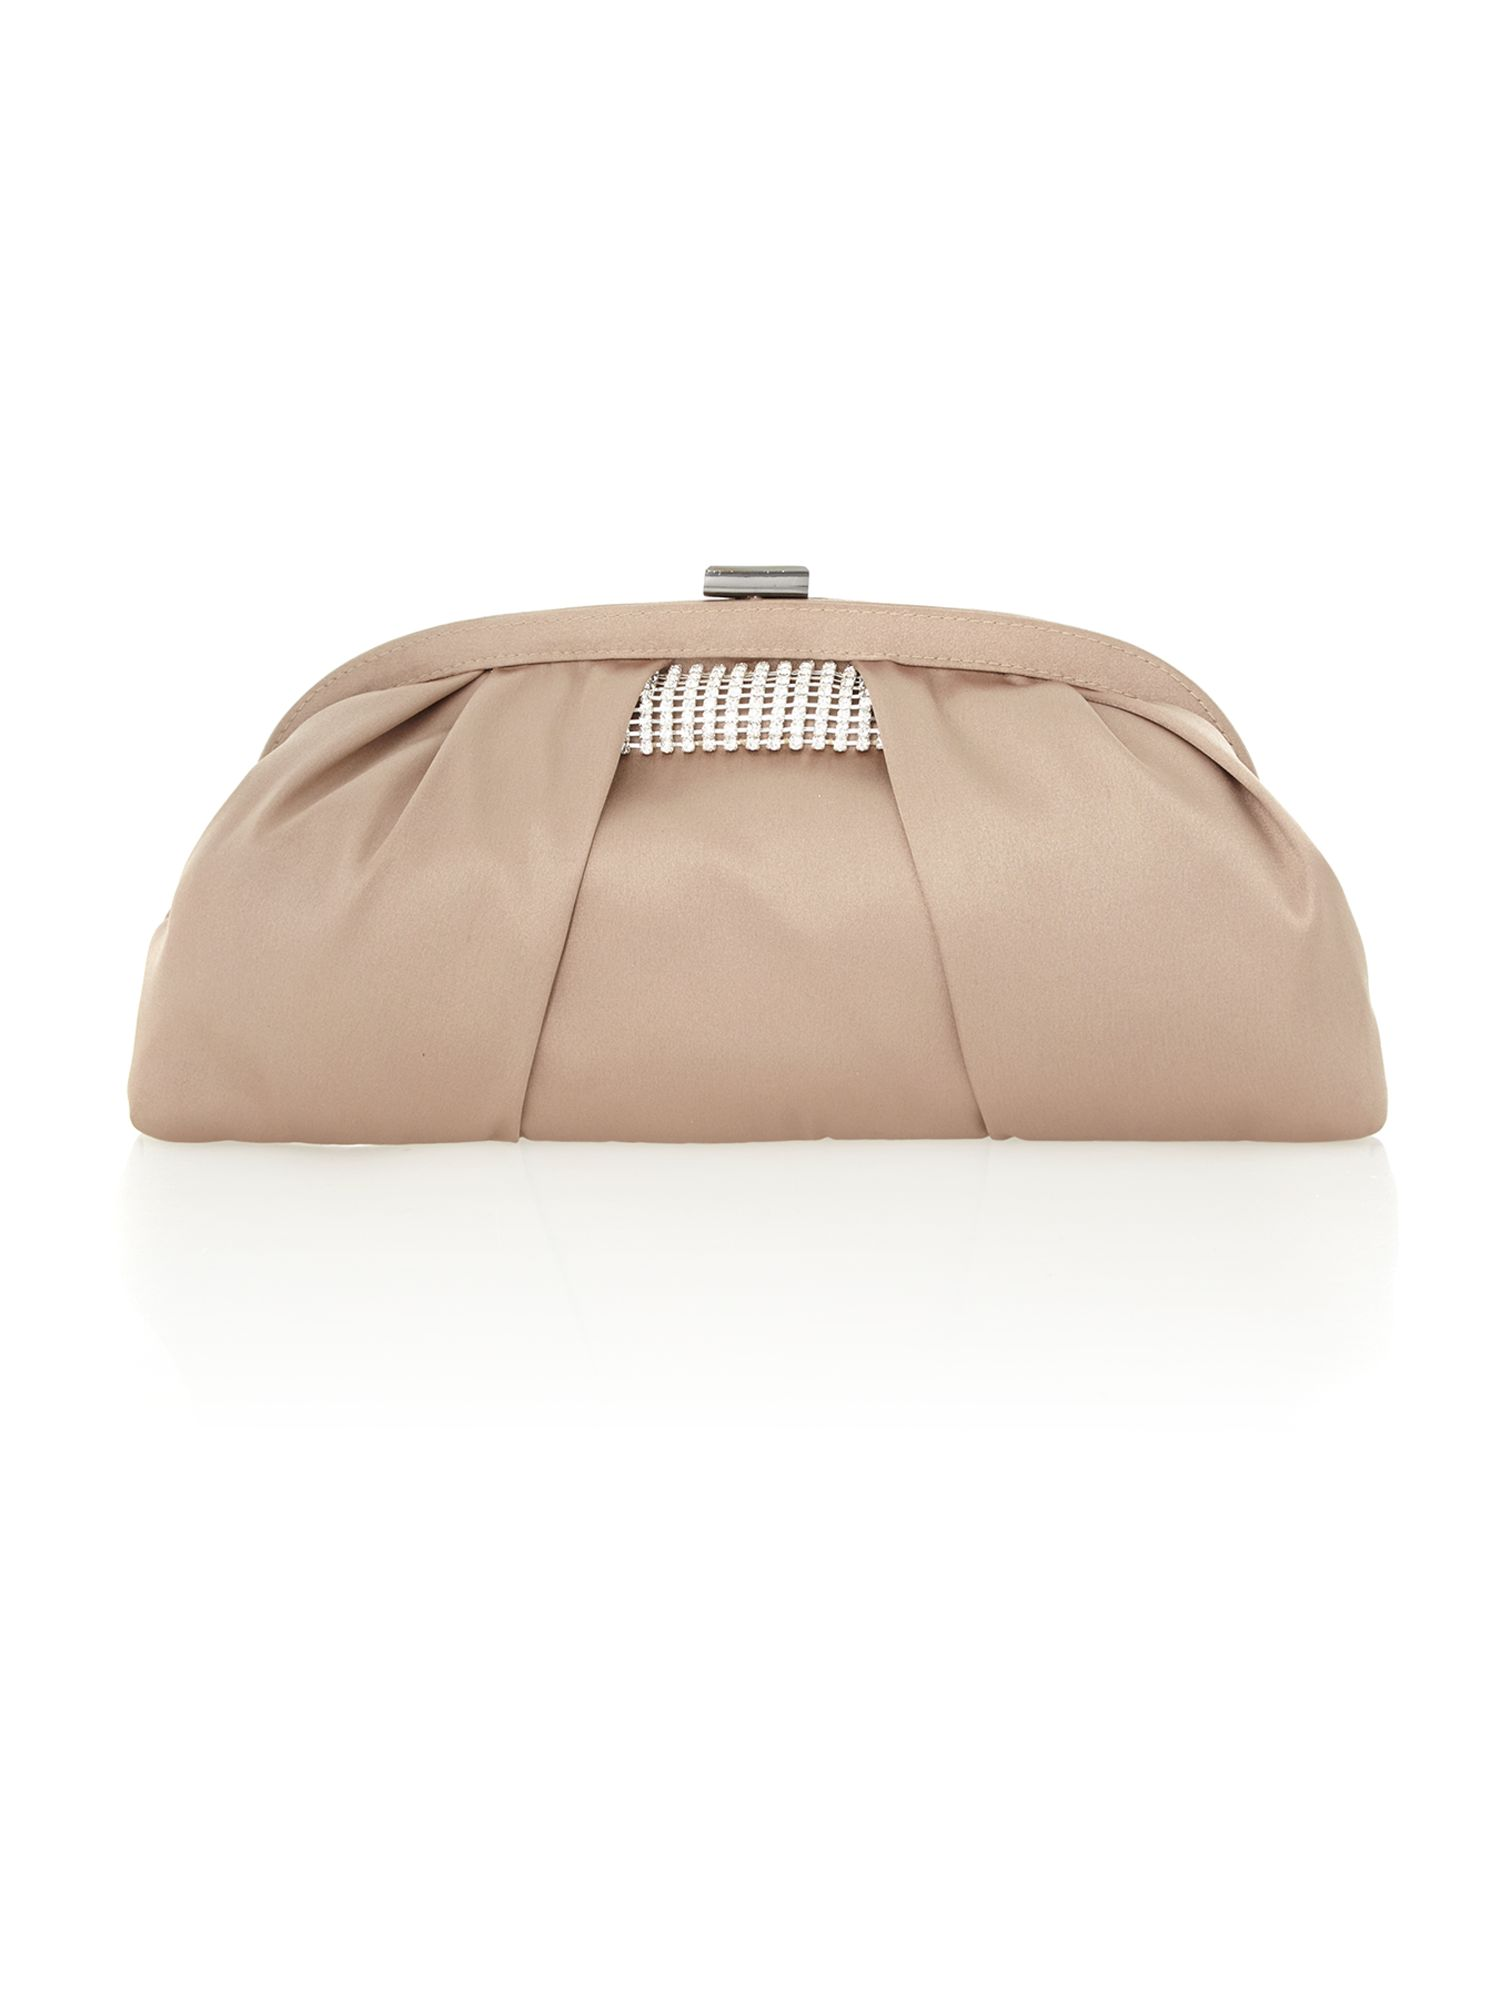 Beau evening clutch bag